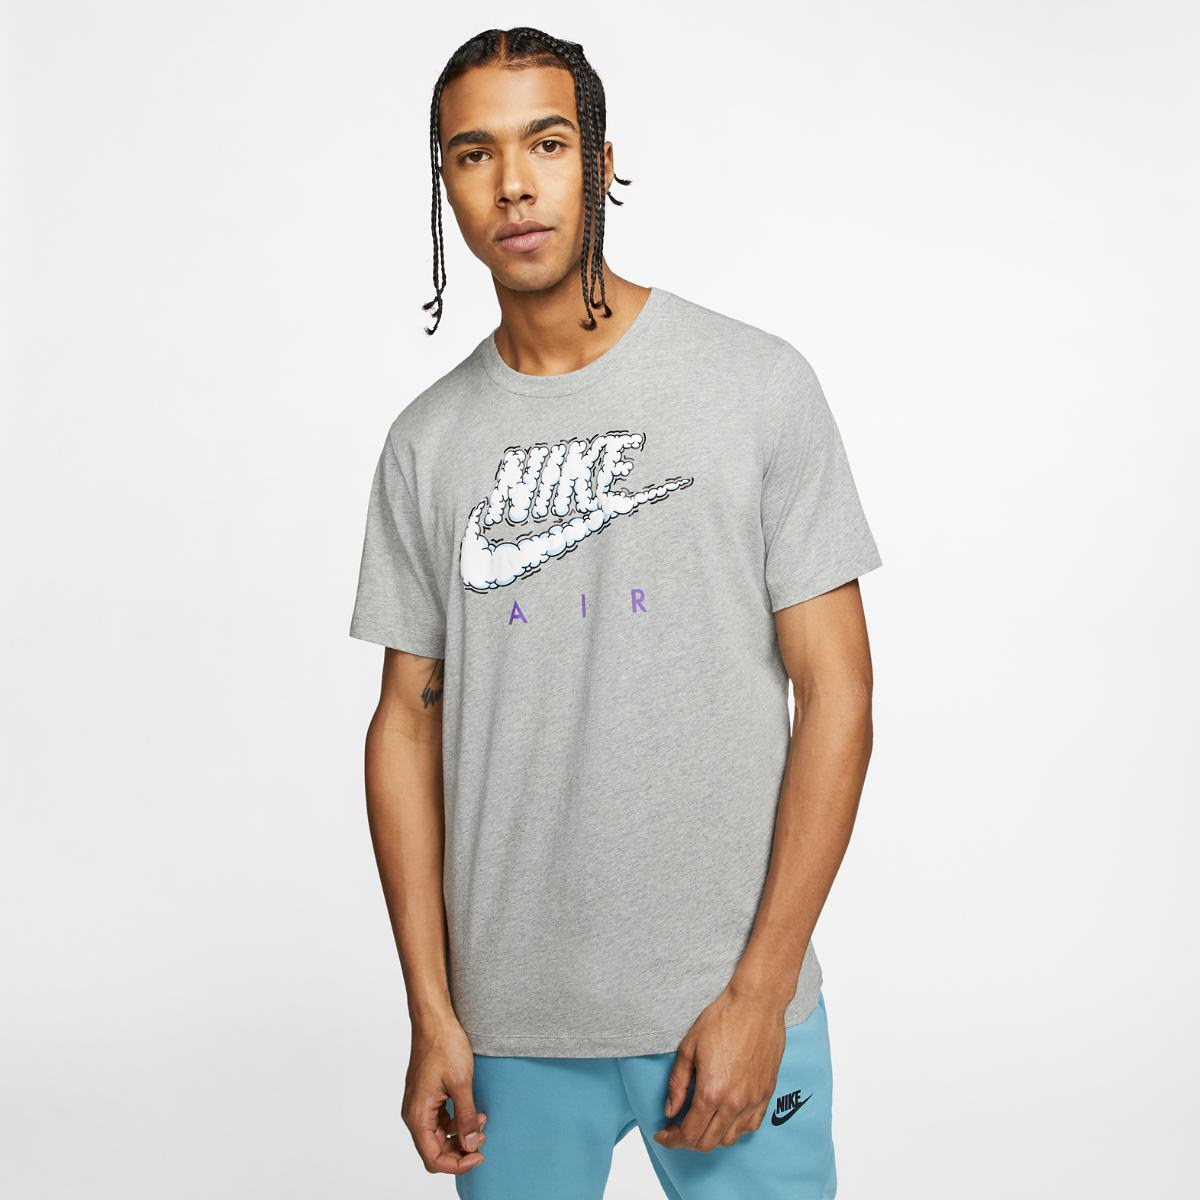 Футболка Nike M NSW AIR ILLUSTRATION TEE